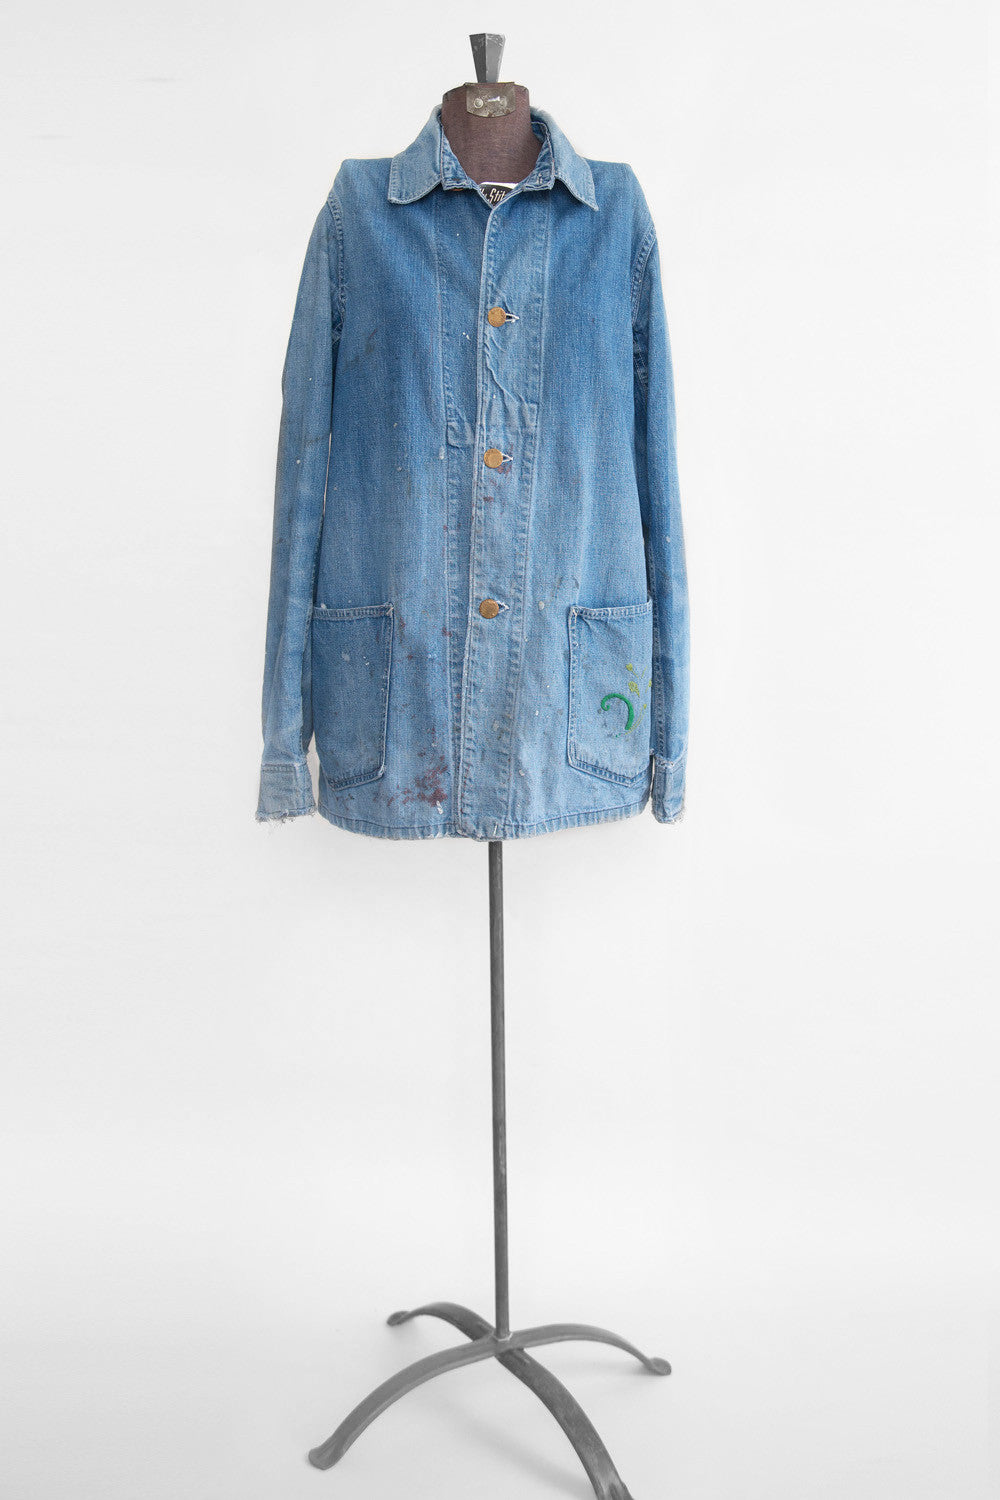 Vintage Women's Denim Chore Jacket